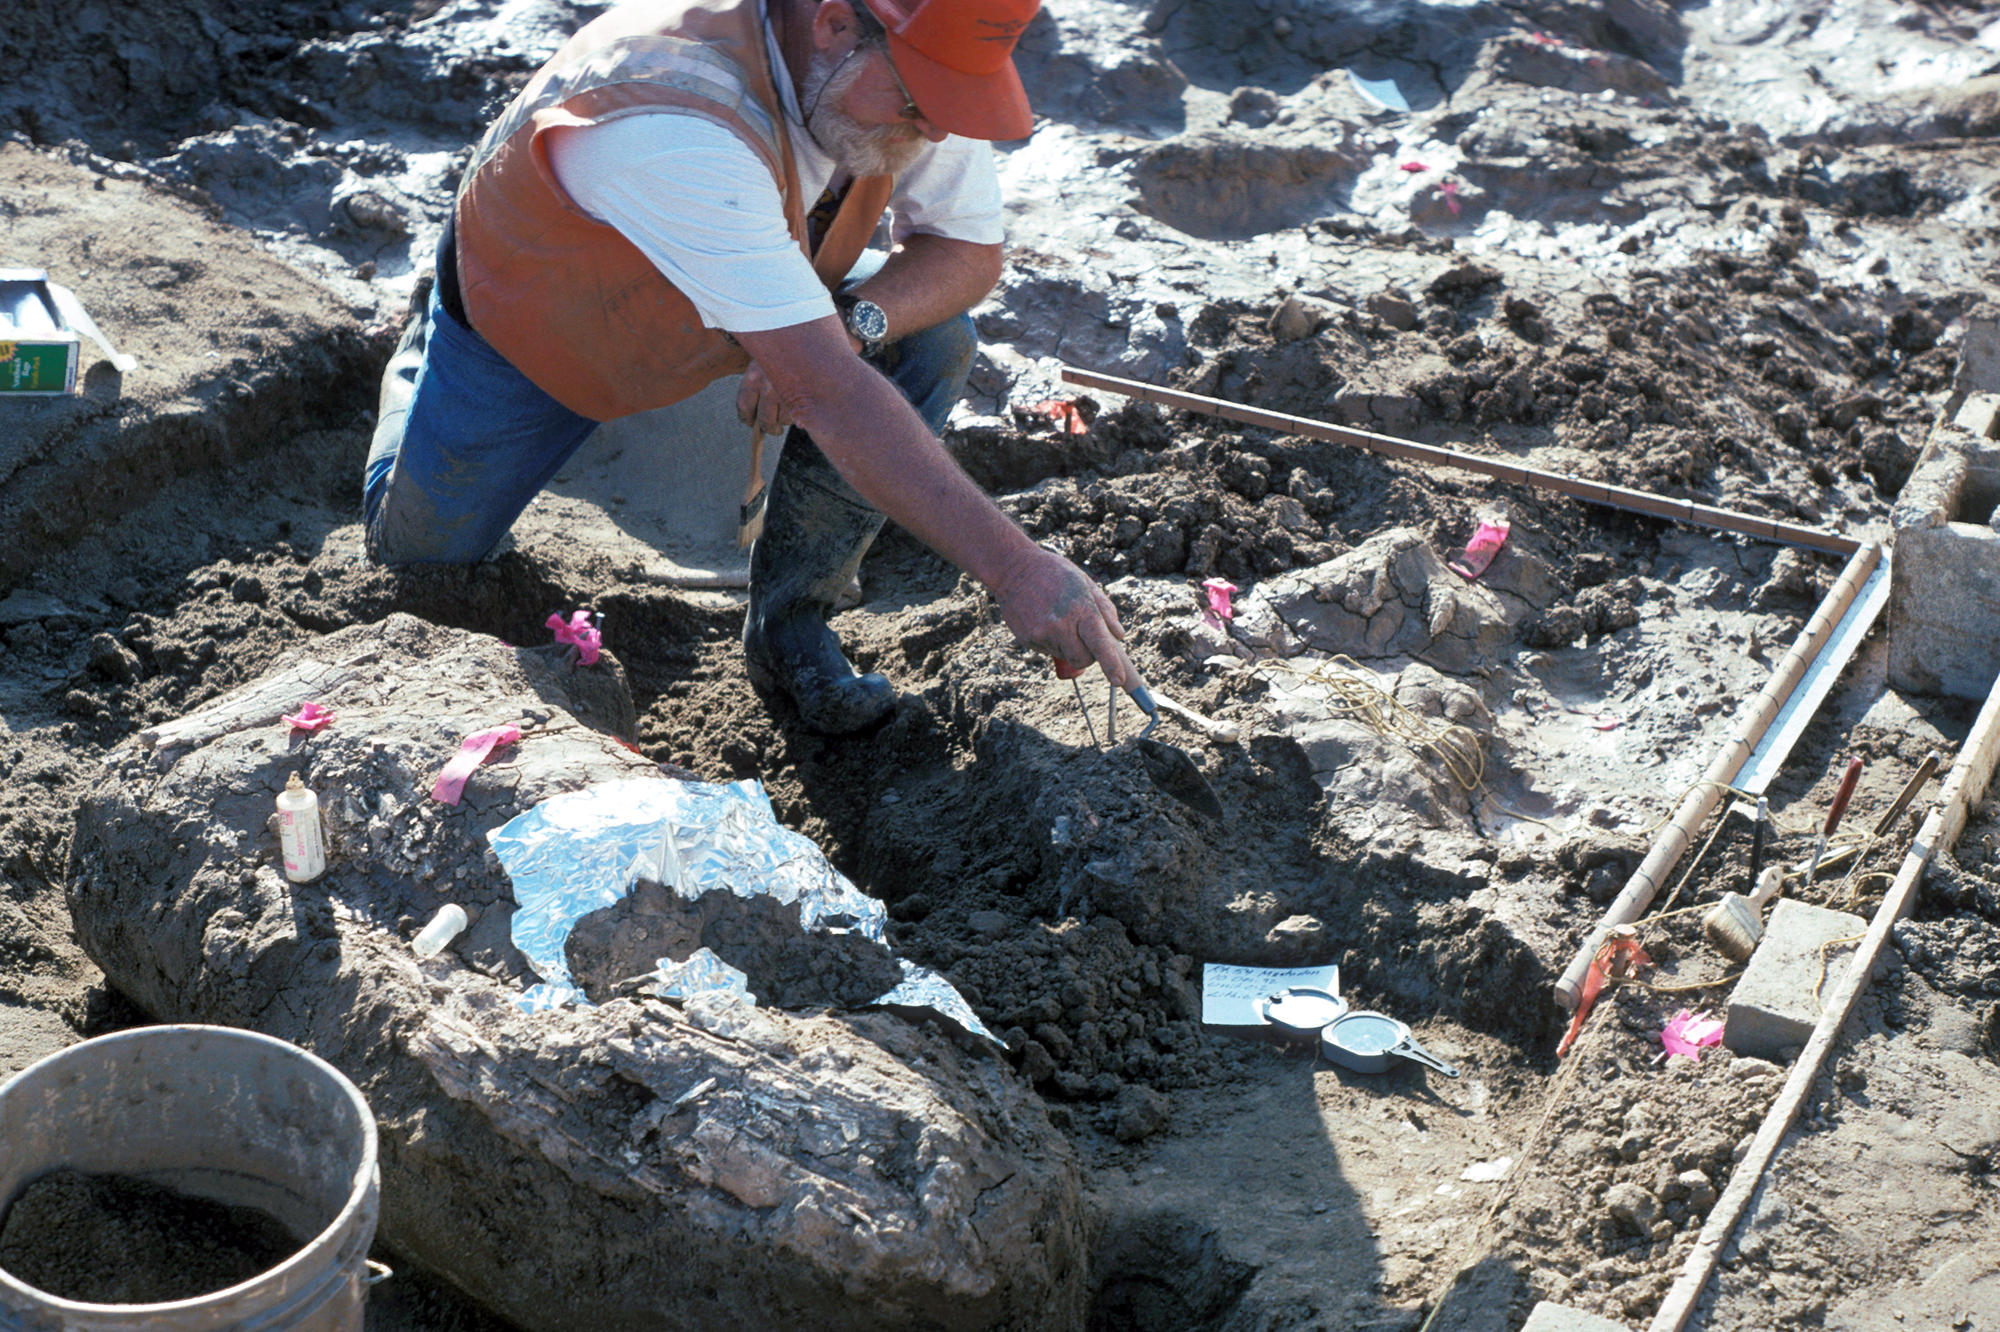 Archaeological find could rewrite American history